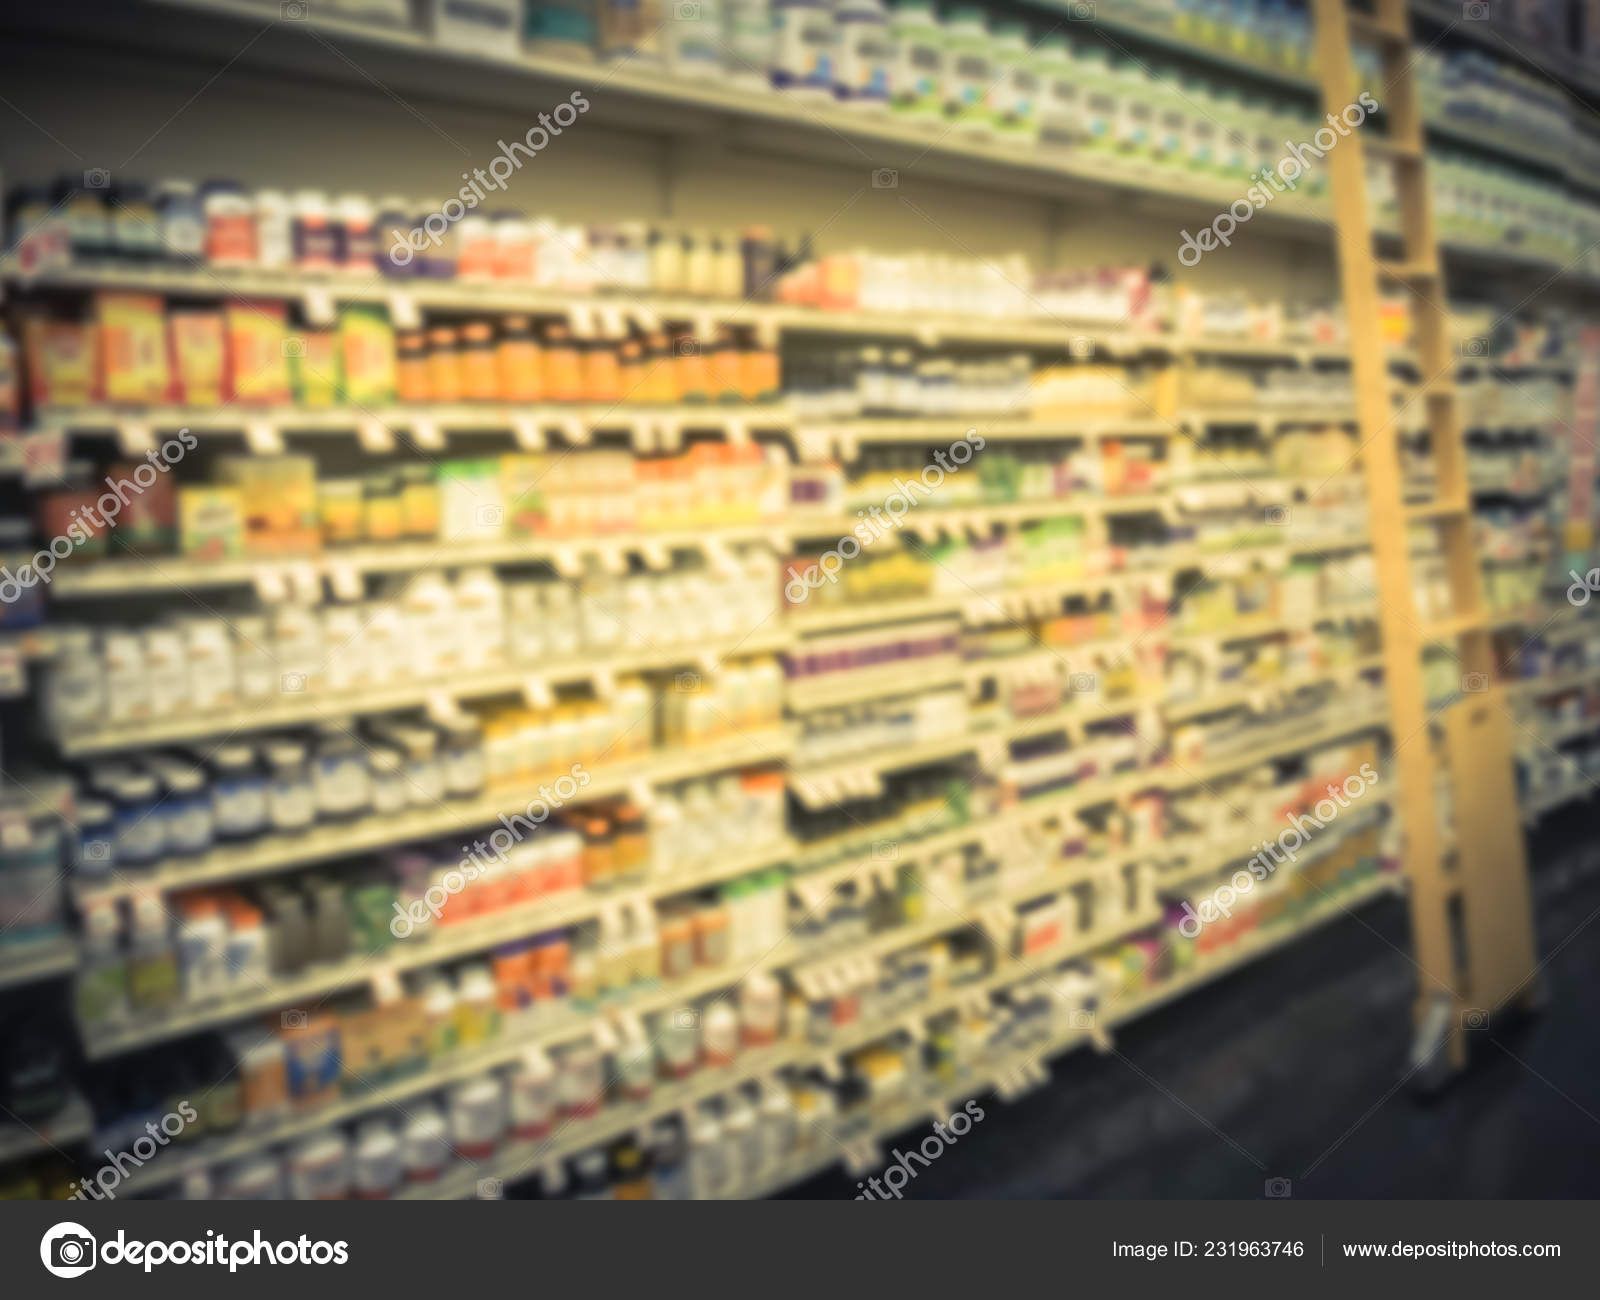 Motion Blurred Variety Vitamin Supplement Products Display Extension Ladder Grocery Stock Photo Image By C Trongnguyen 231963746